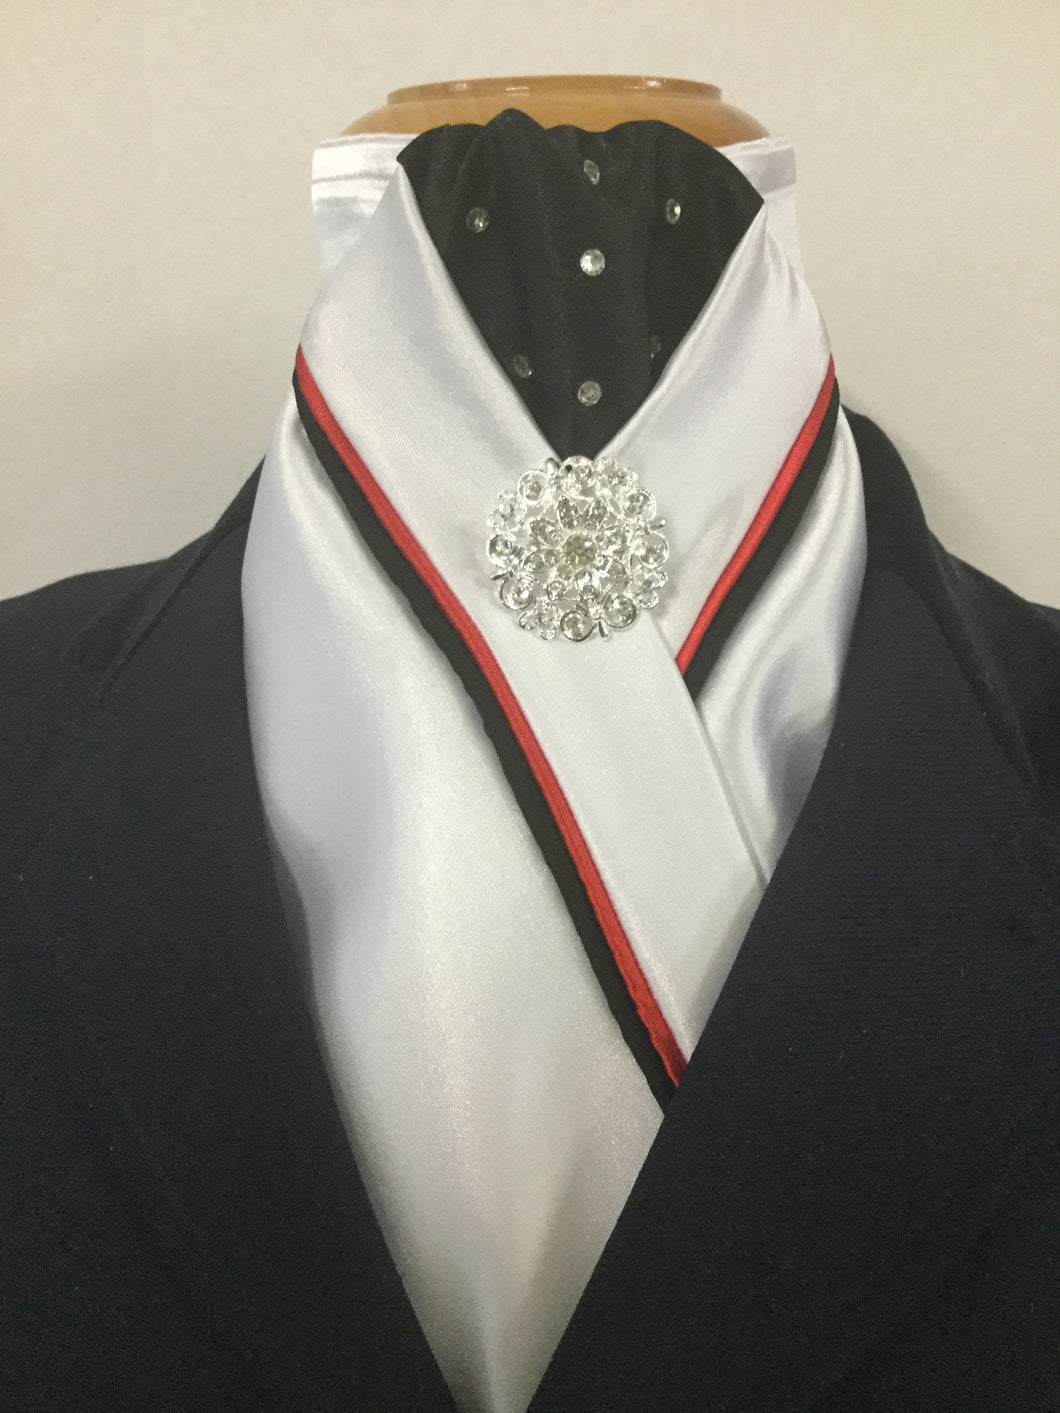 HHD Custom White Stock Tie in Black & Red with Swarovski Elements